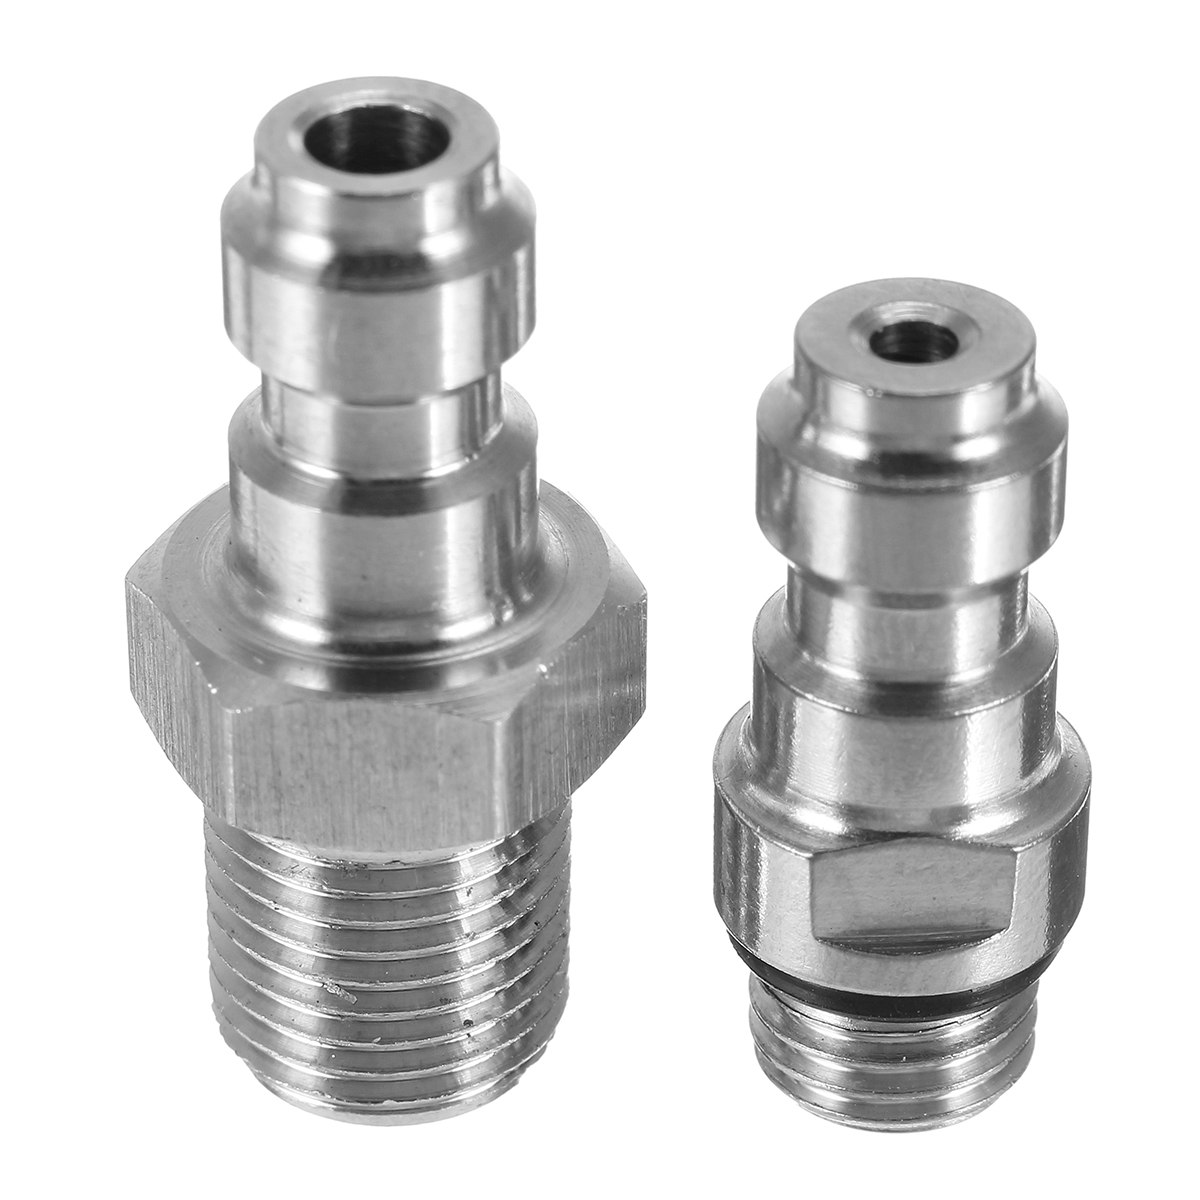 M8x1.0 Threads PCP Fill Nipple Stainless Steel 8mm Air Tank One Way Foster Fitting Screwed Joint